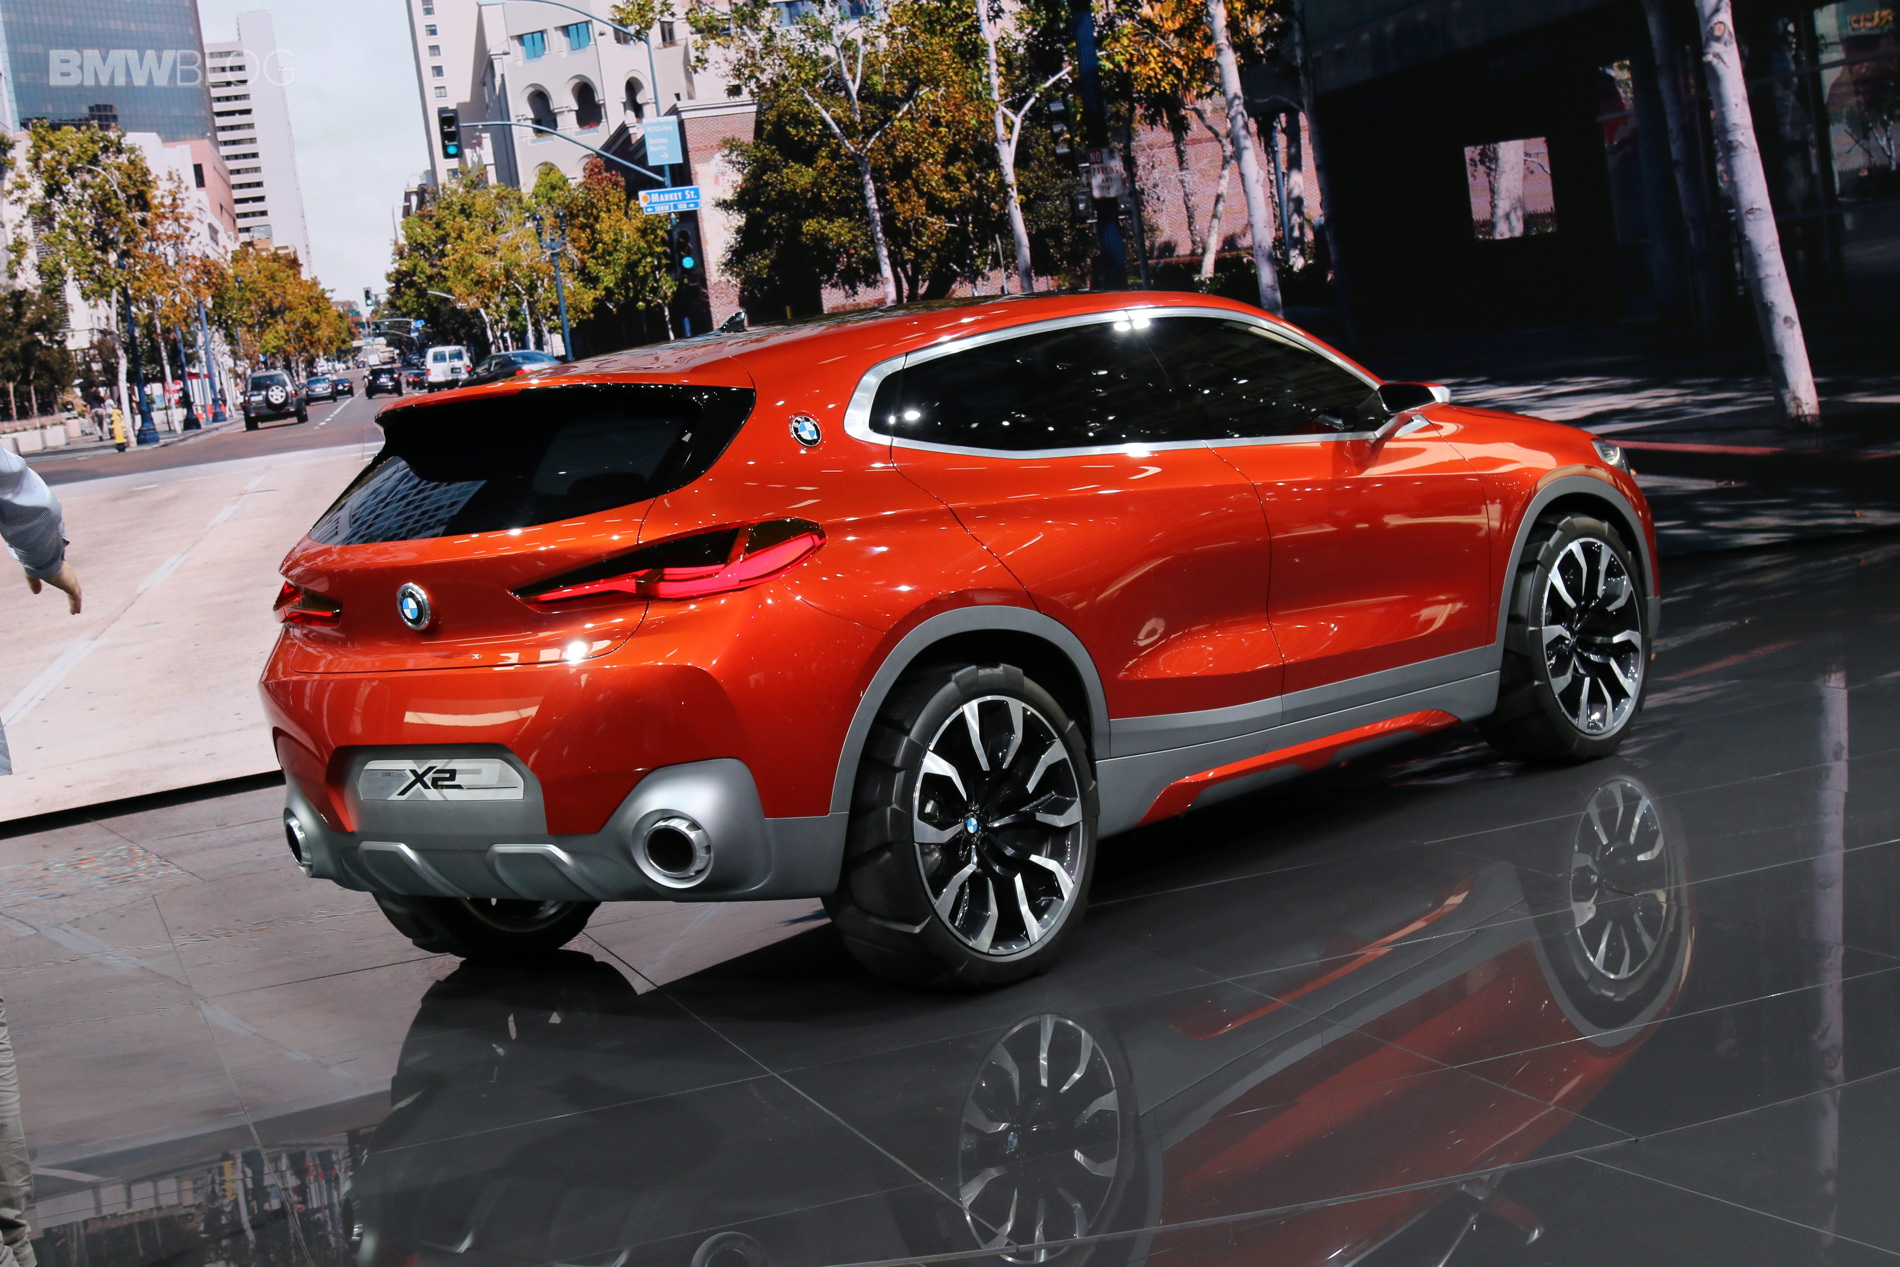 New Bmw Concept X2 Photos Live From 2016 Paris Auto Show